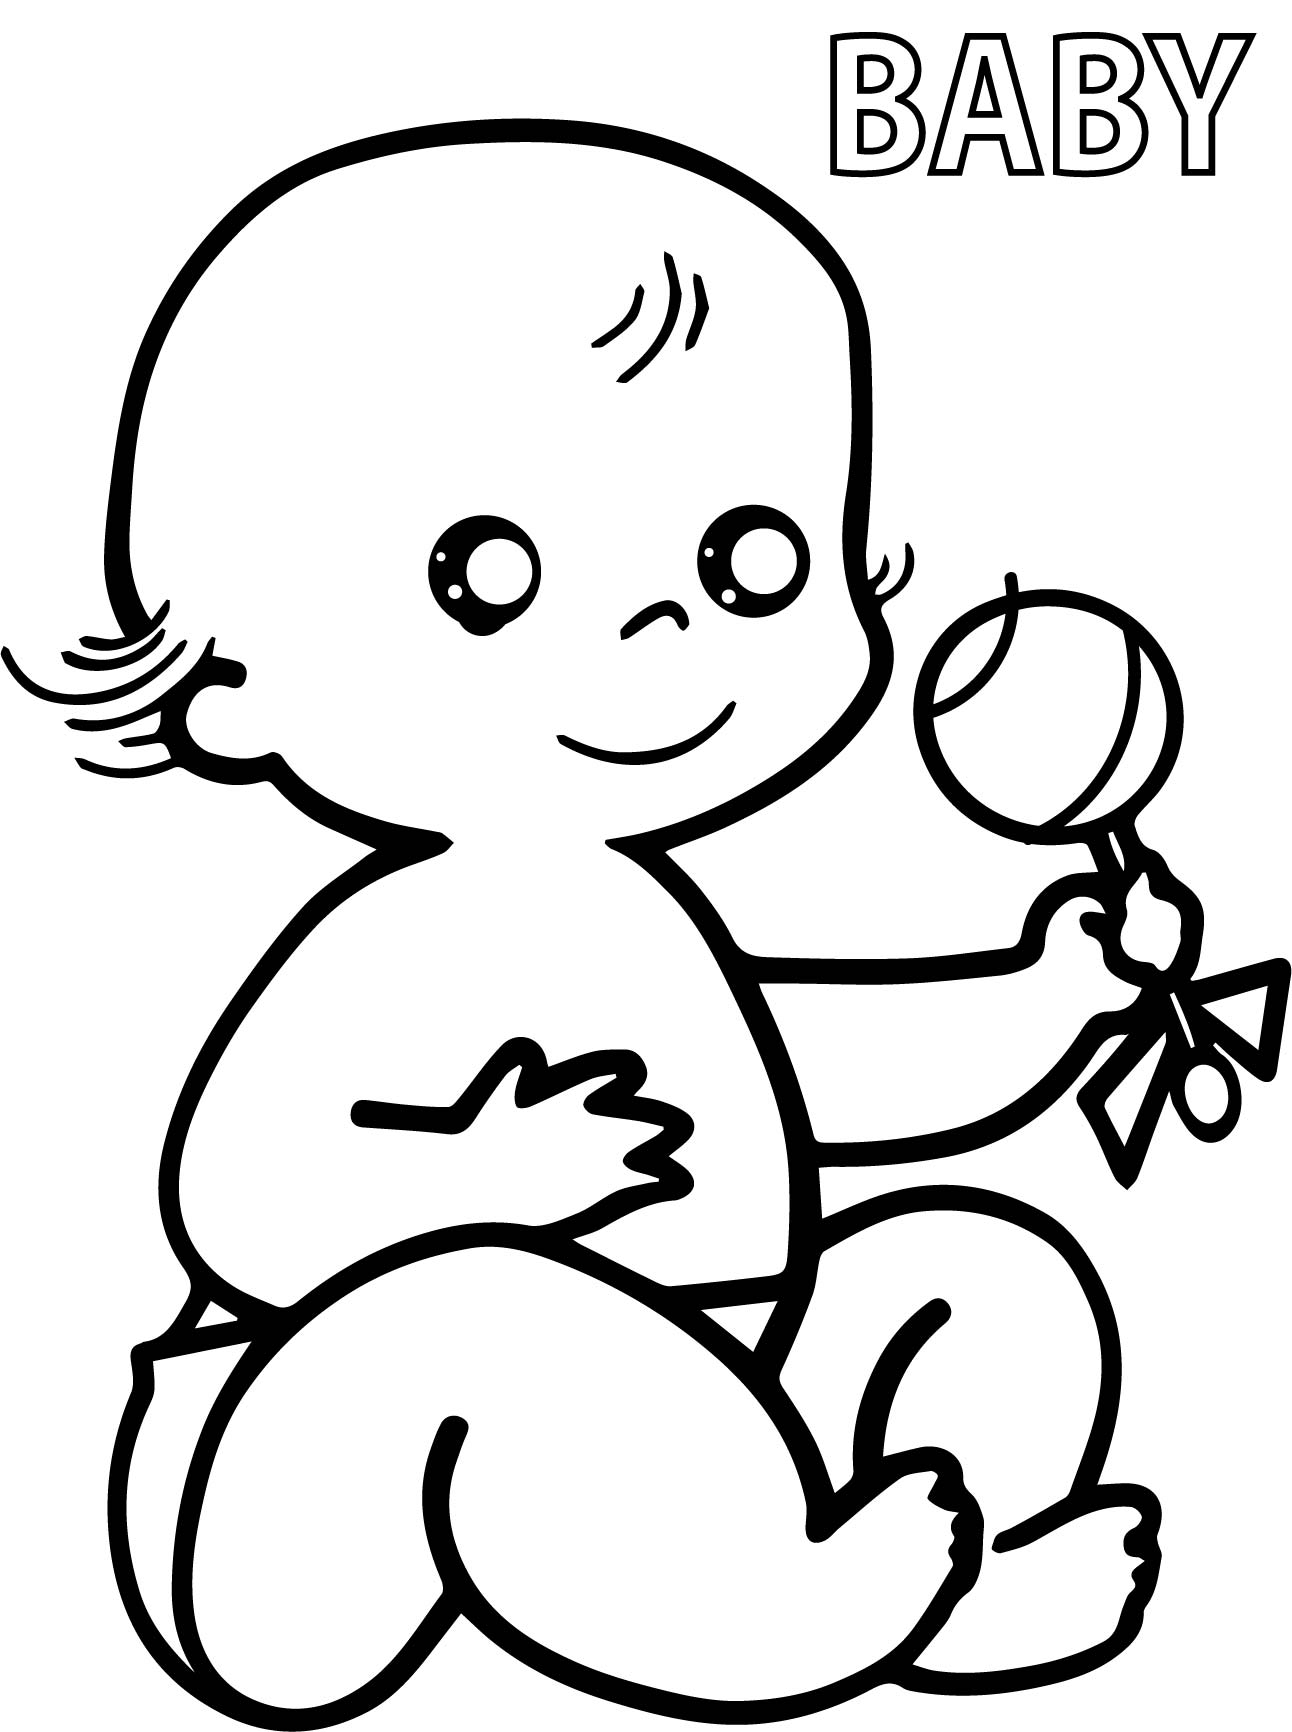 Preschool Baby Coloring Pages